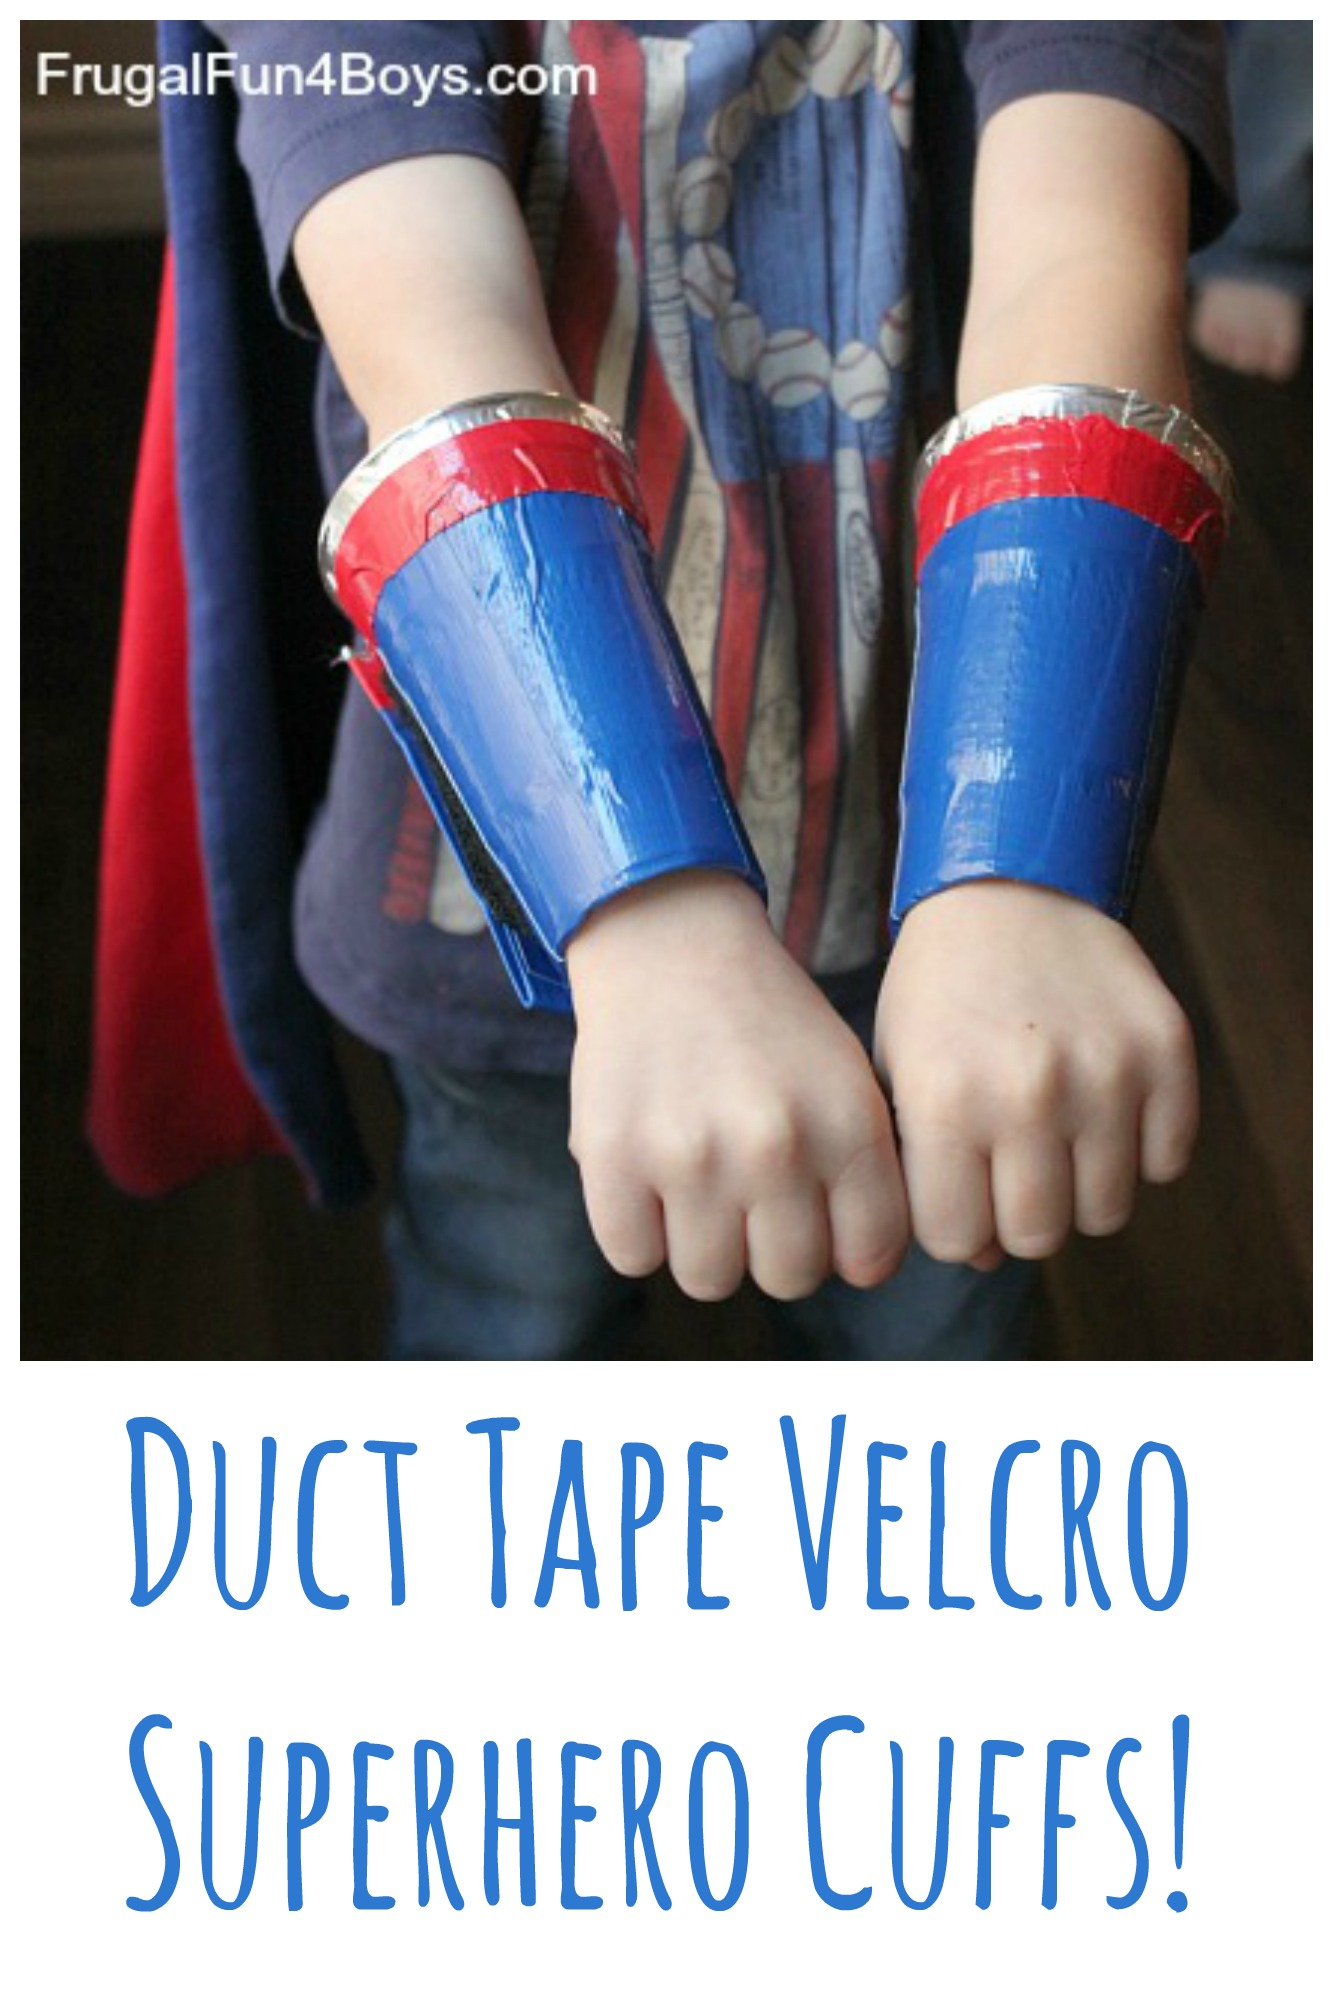 Duct Tape Velcro Superhero Cuffs - They can be taken off and on